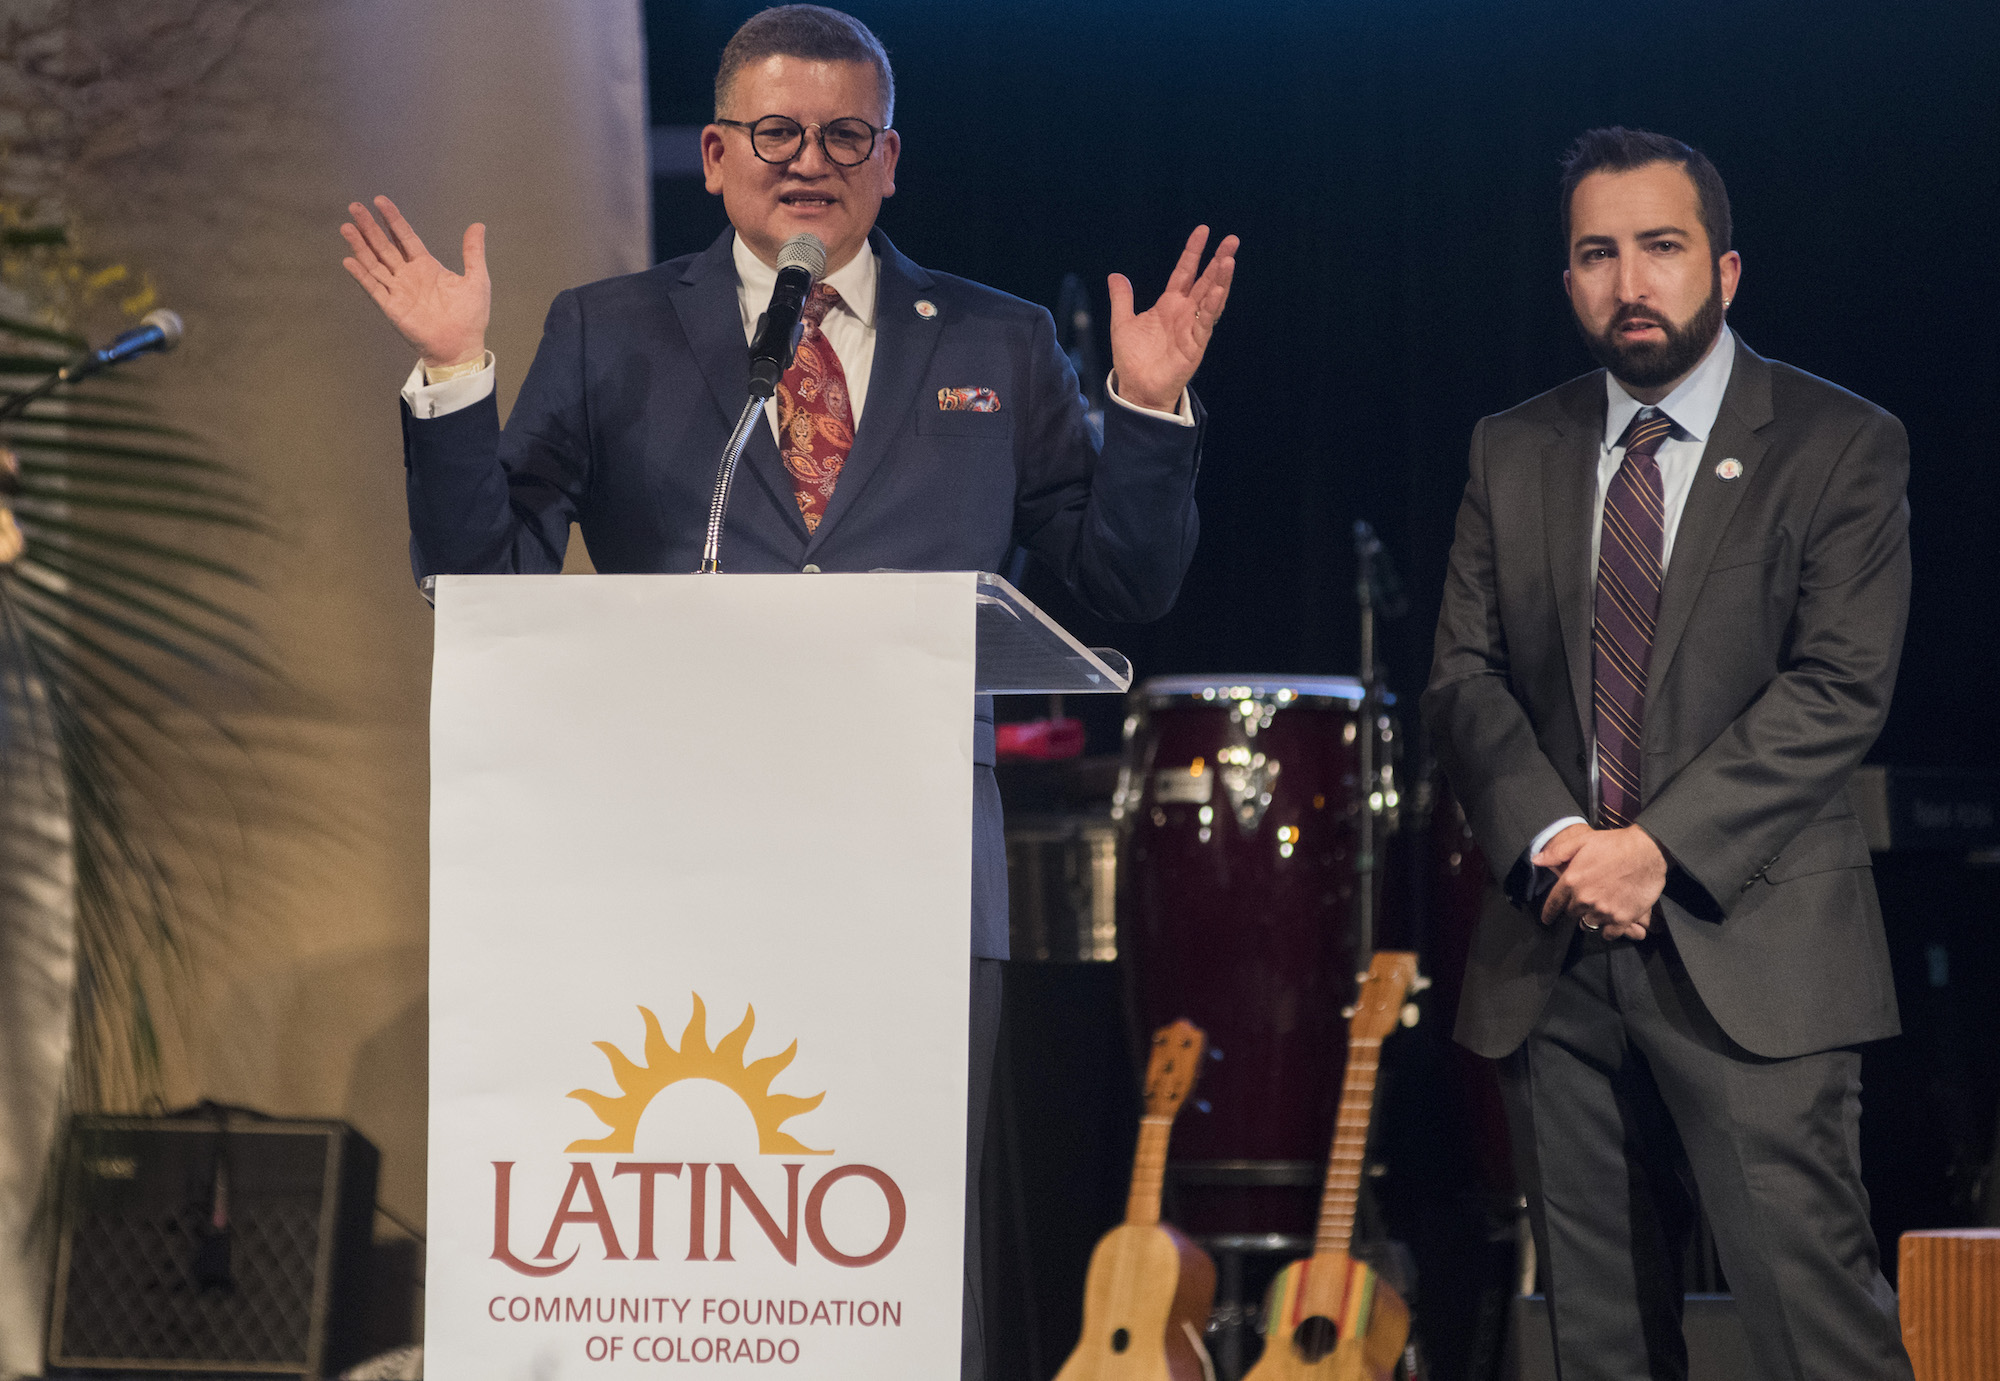 Aguilar PR worked with the Latino Community Foundation of Colorado to promote successful Latino community members statewide.